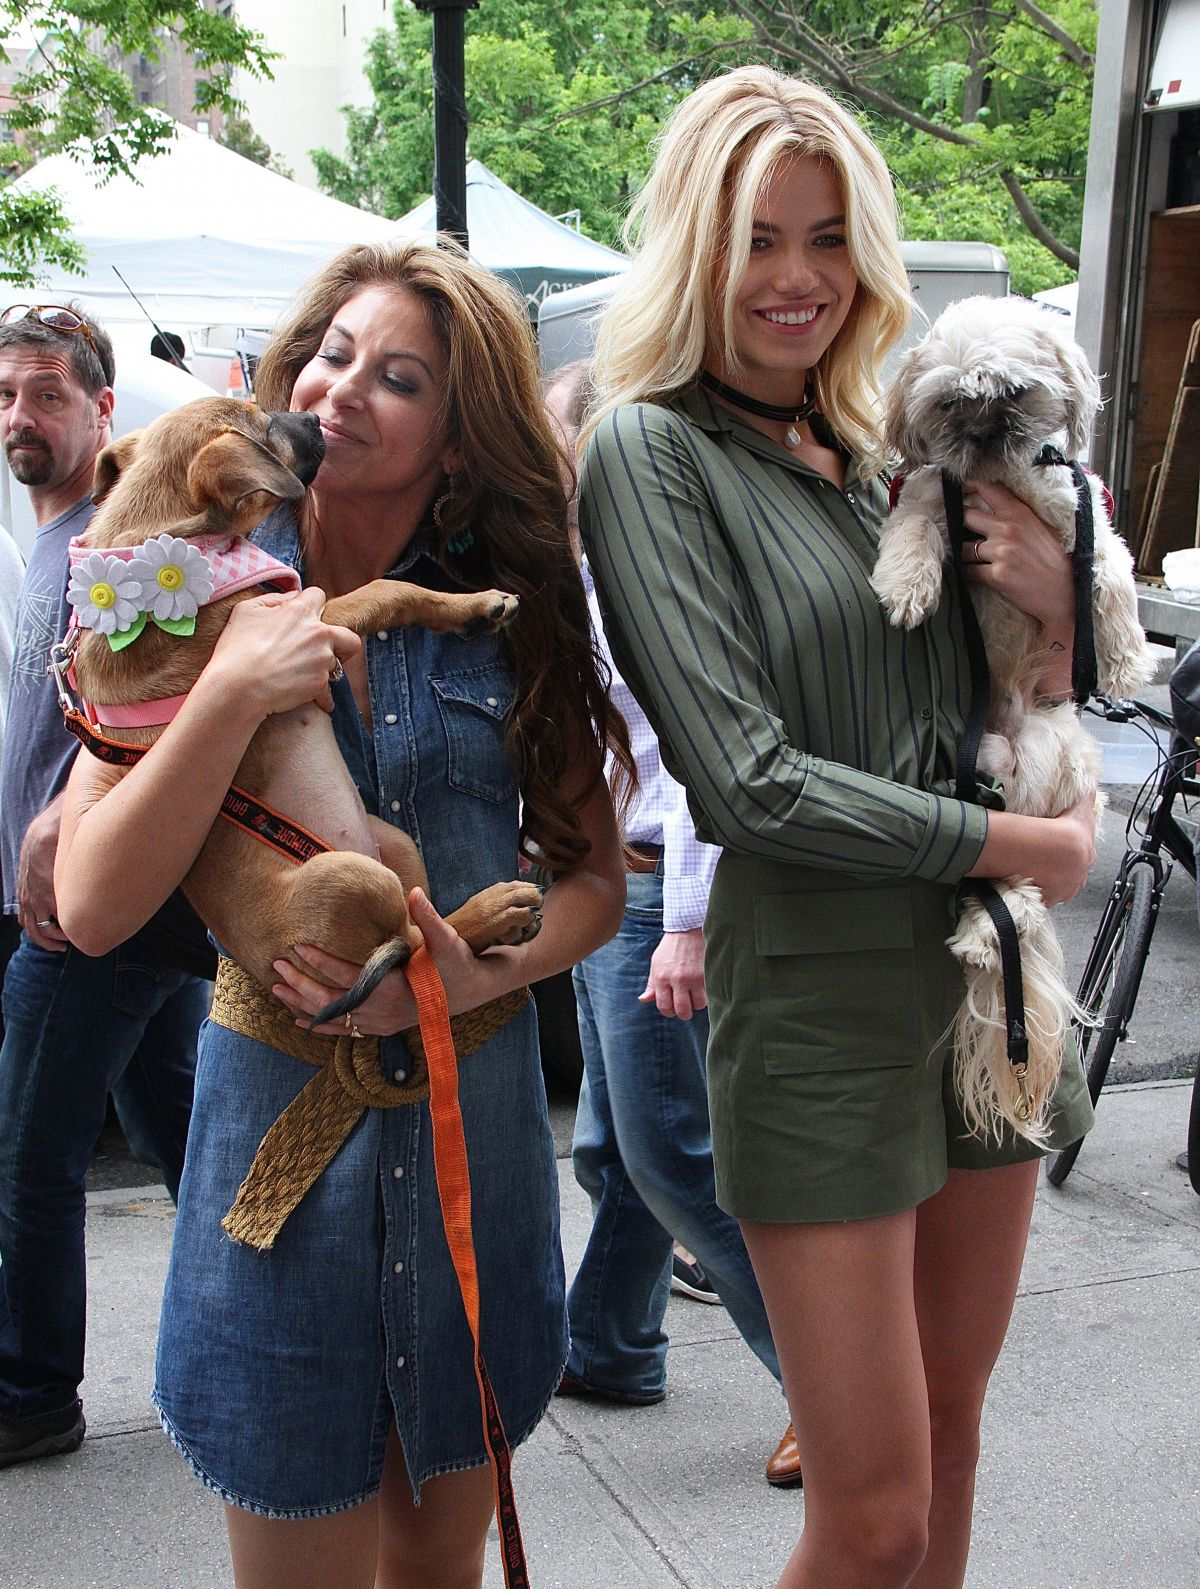 HAILEY CLAUSON and DYLAN LAUREN at Dylan